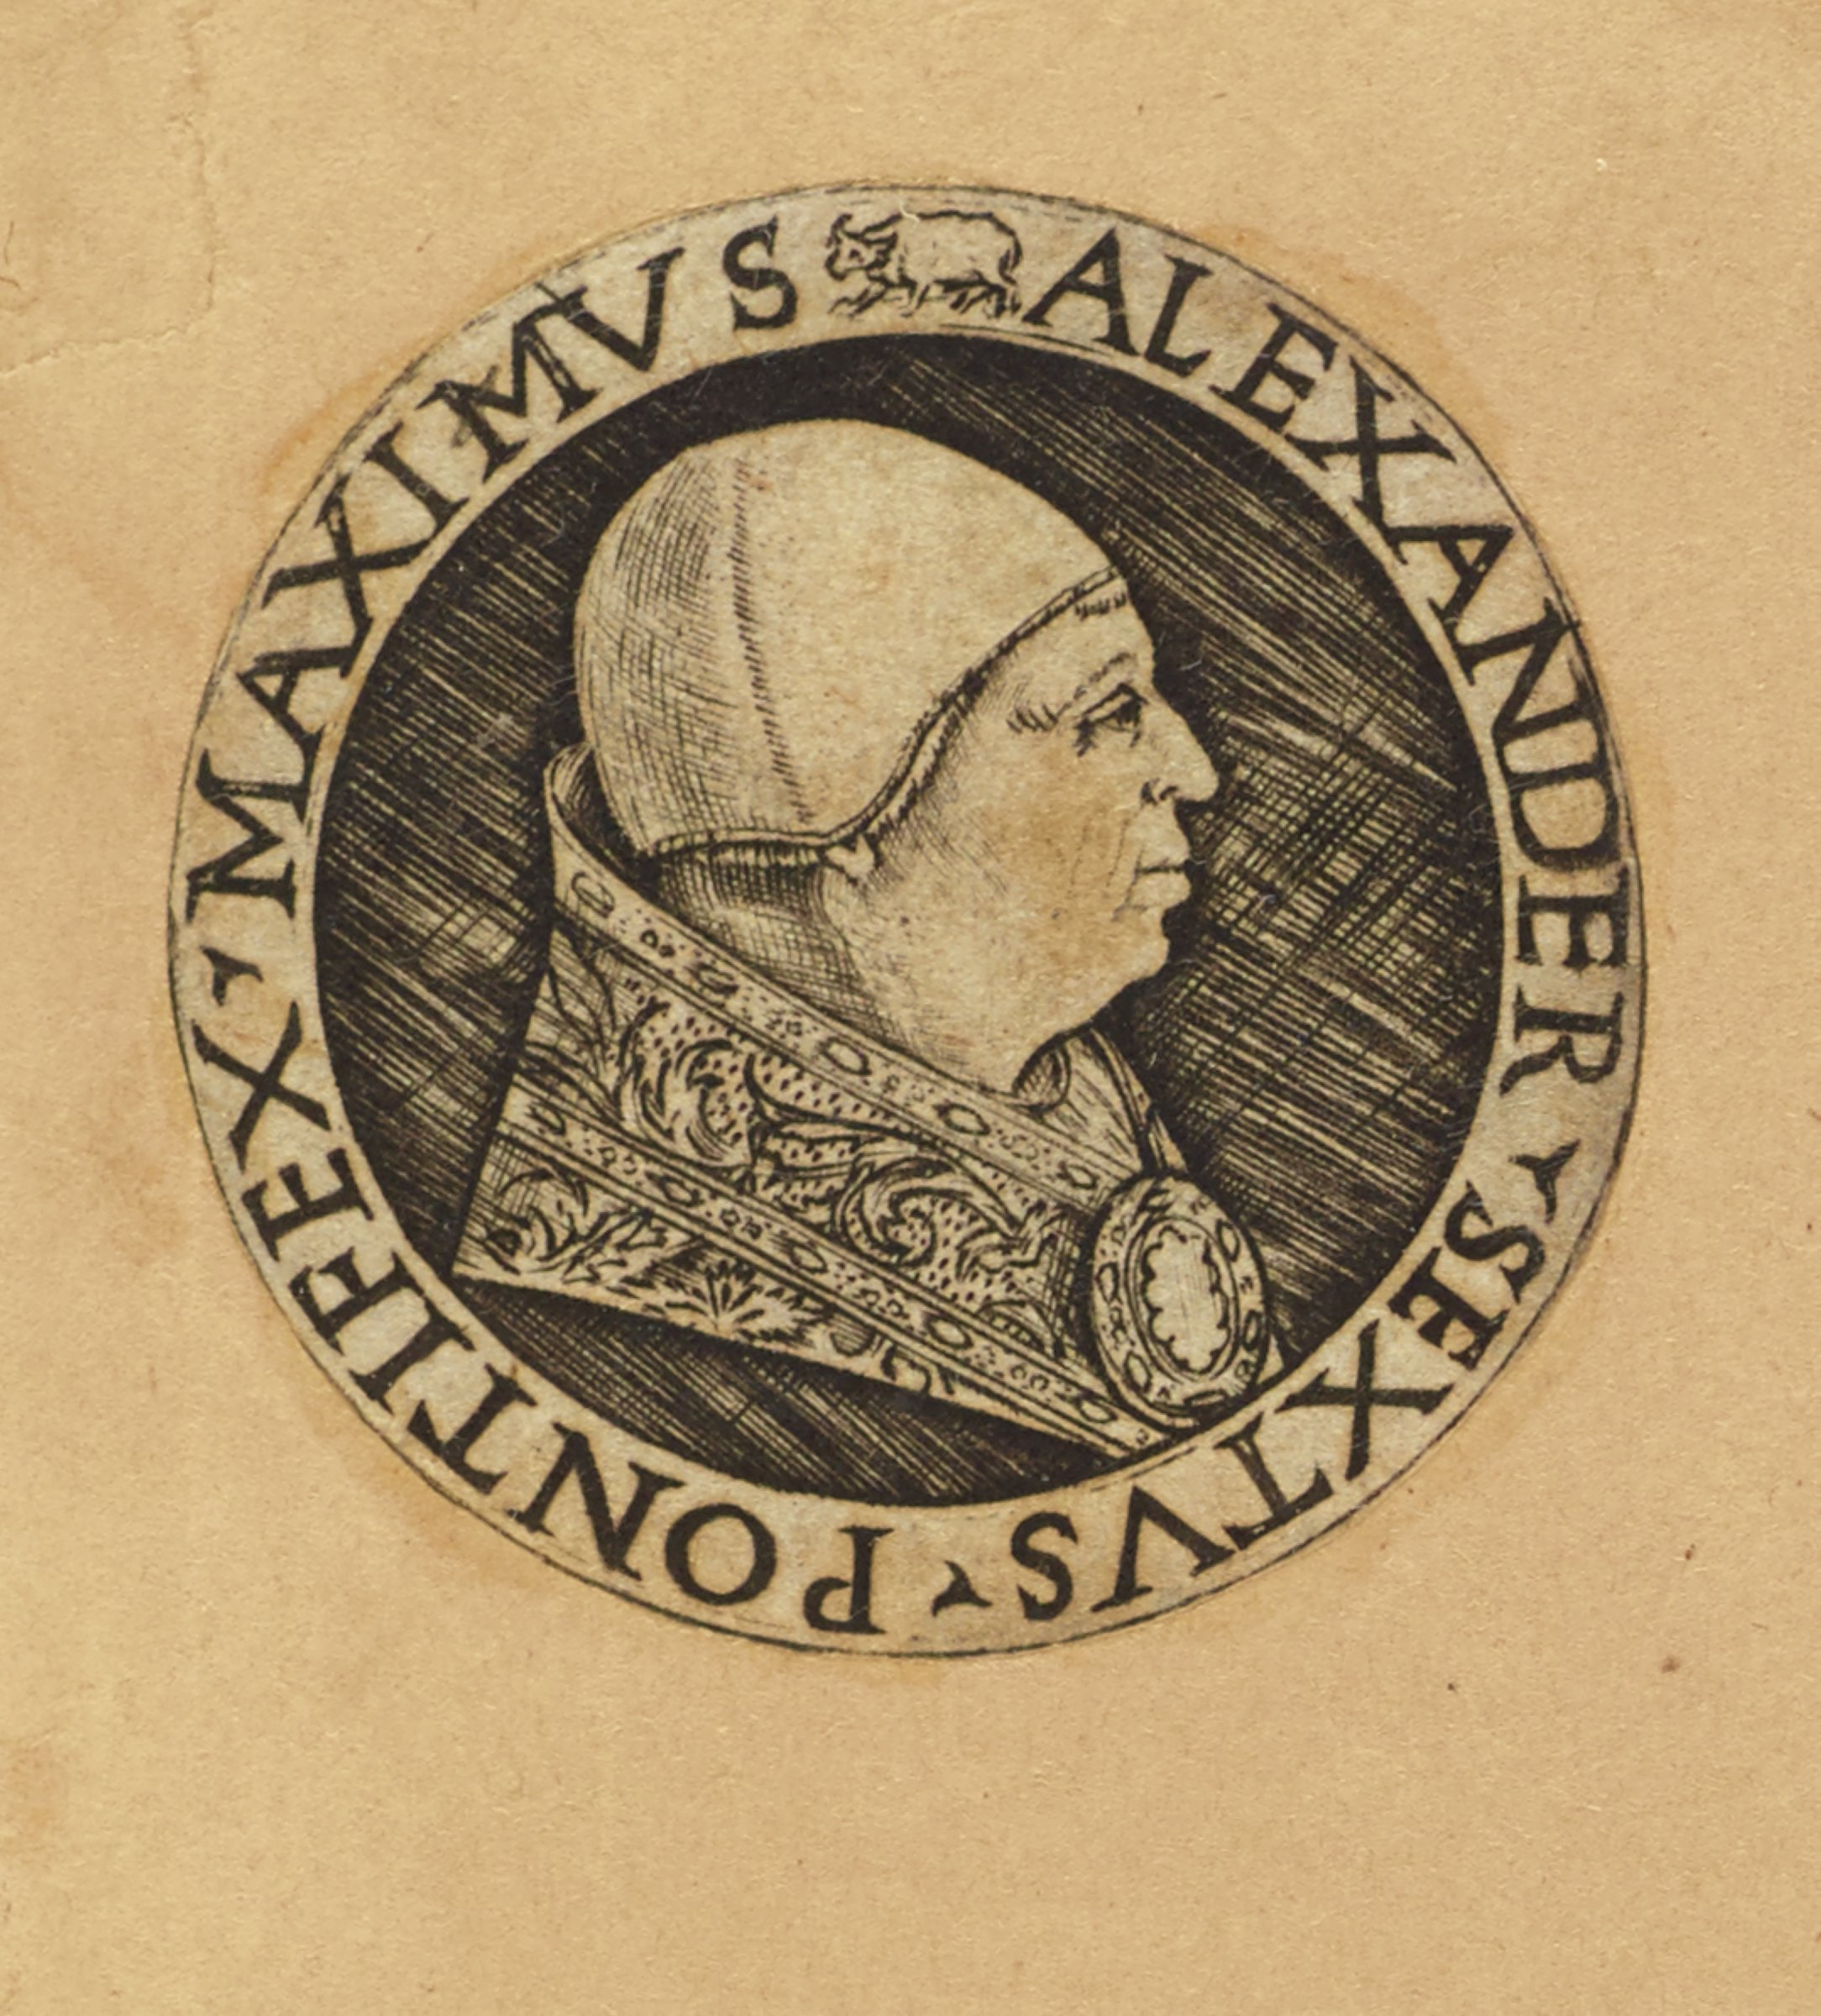 """Bust portrait in profile of Pope Alexander VI facing right. Surrounding the portrait is inscribed his title and name in Latin, """"Pontifex Maximus- Alexander Sextus."""""""